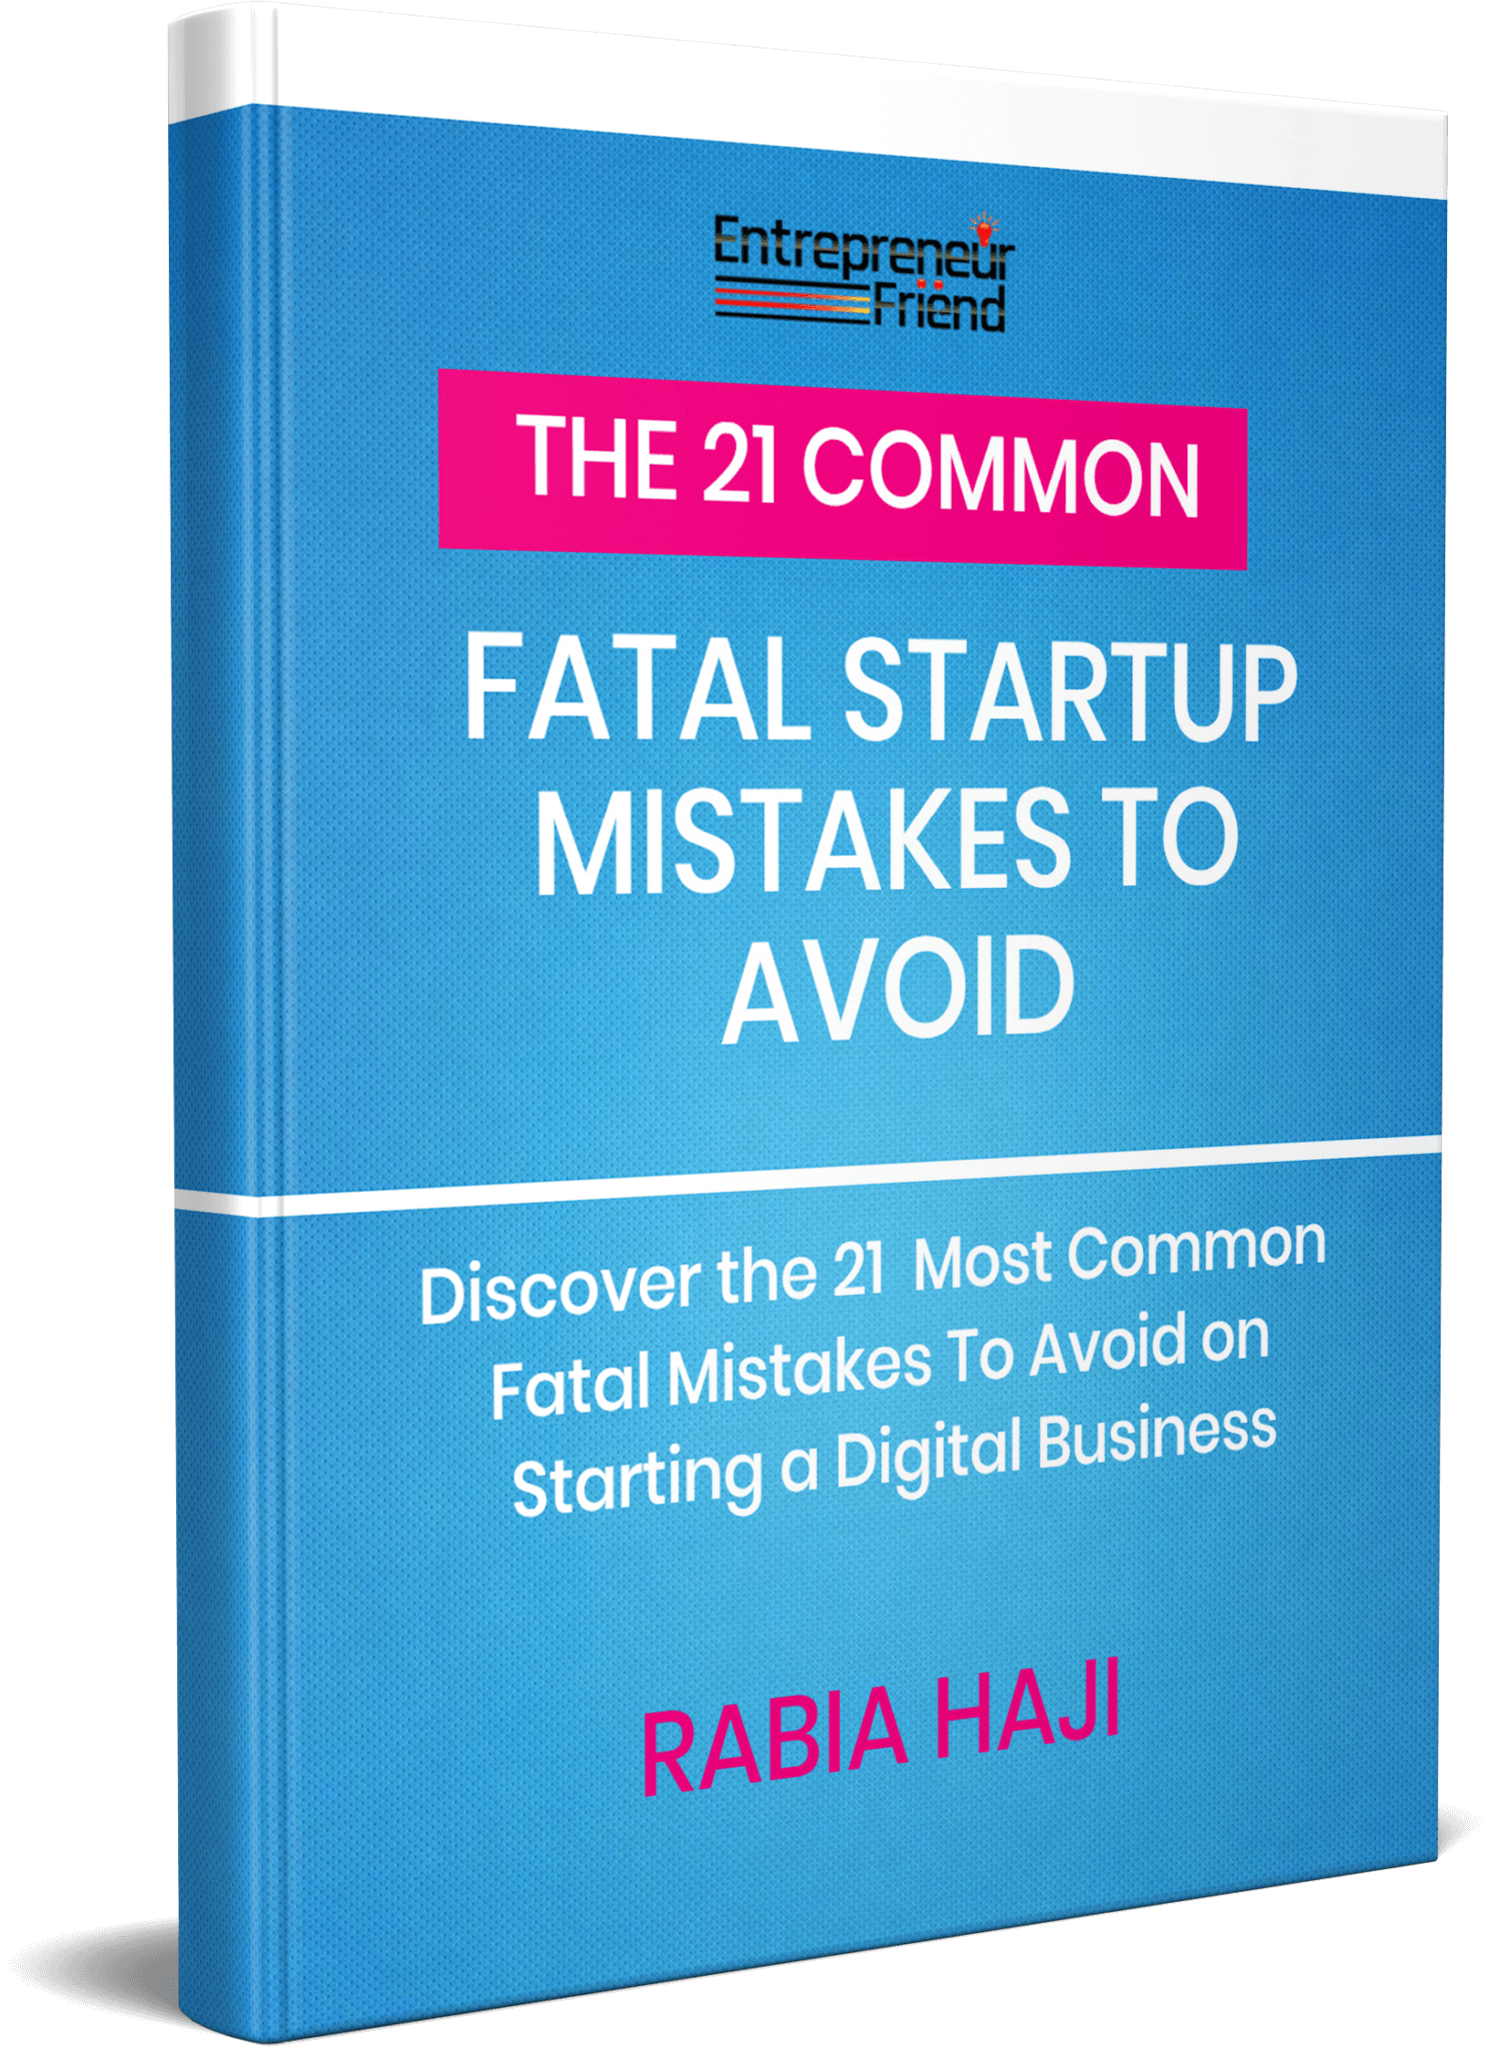 21 common fata startup mistakes to avoid on starting a digital business by rabia haji entrepreneur friend pink